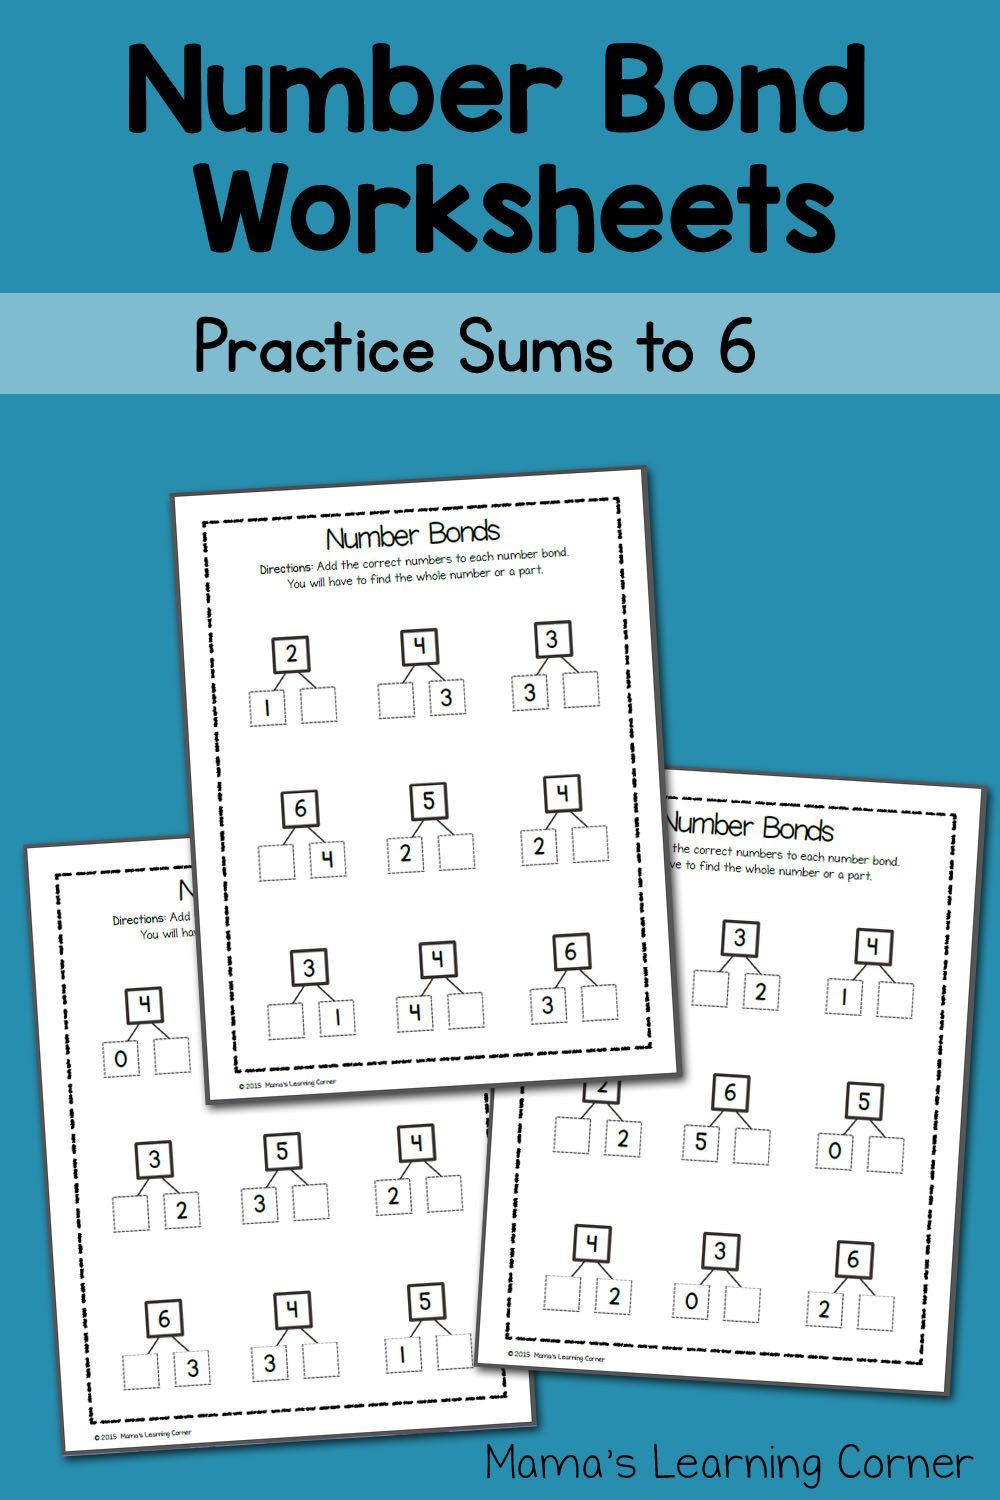 Kindergarten Number Bond Worksheet Number Bond Worksheets Sums to 6 Mamas Learning Corner